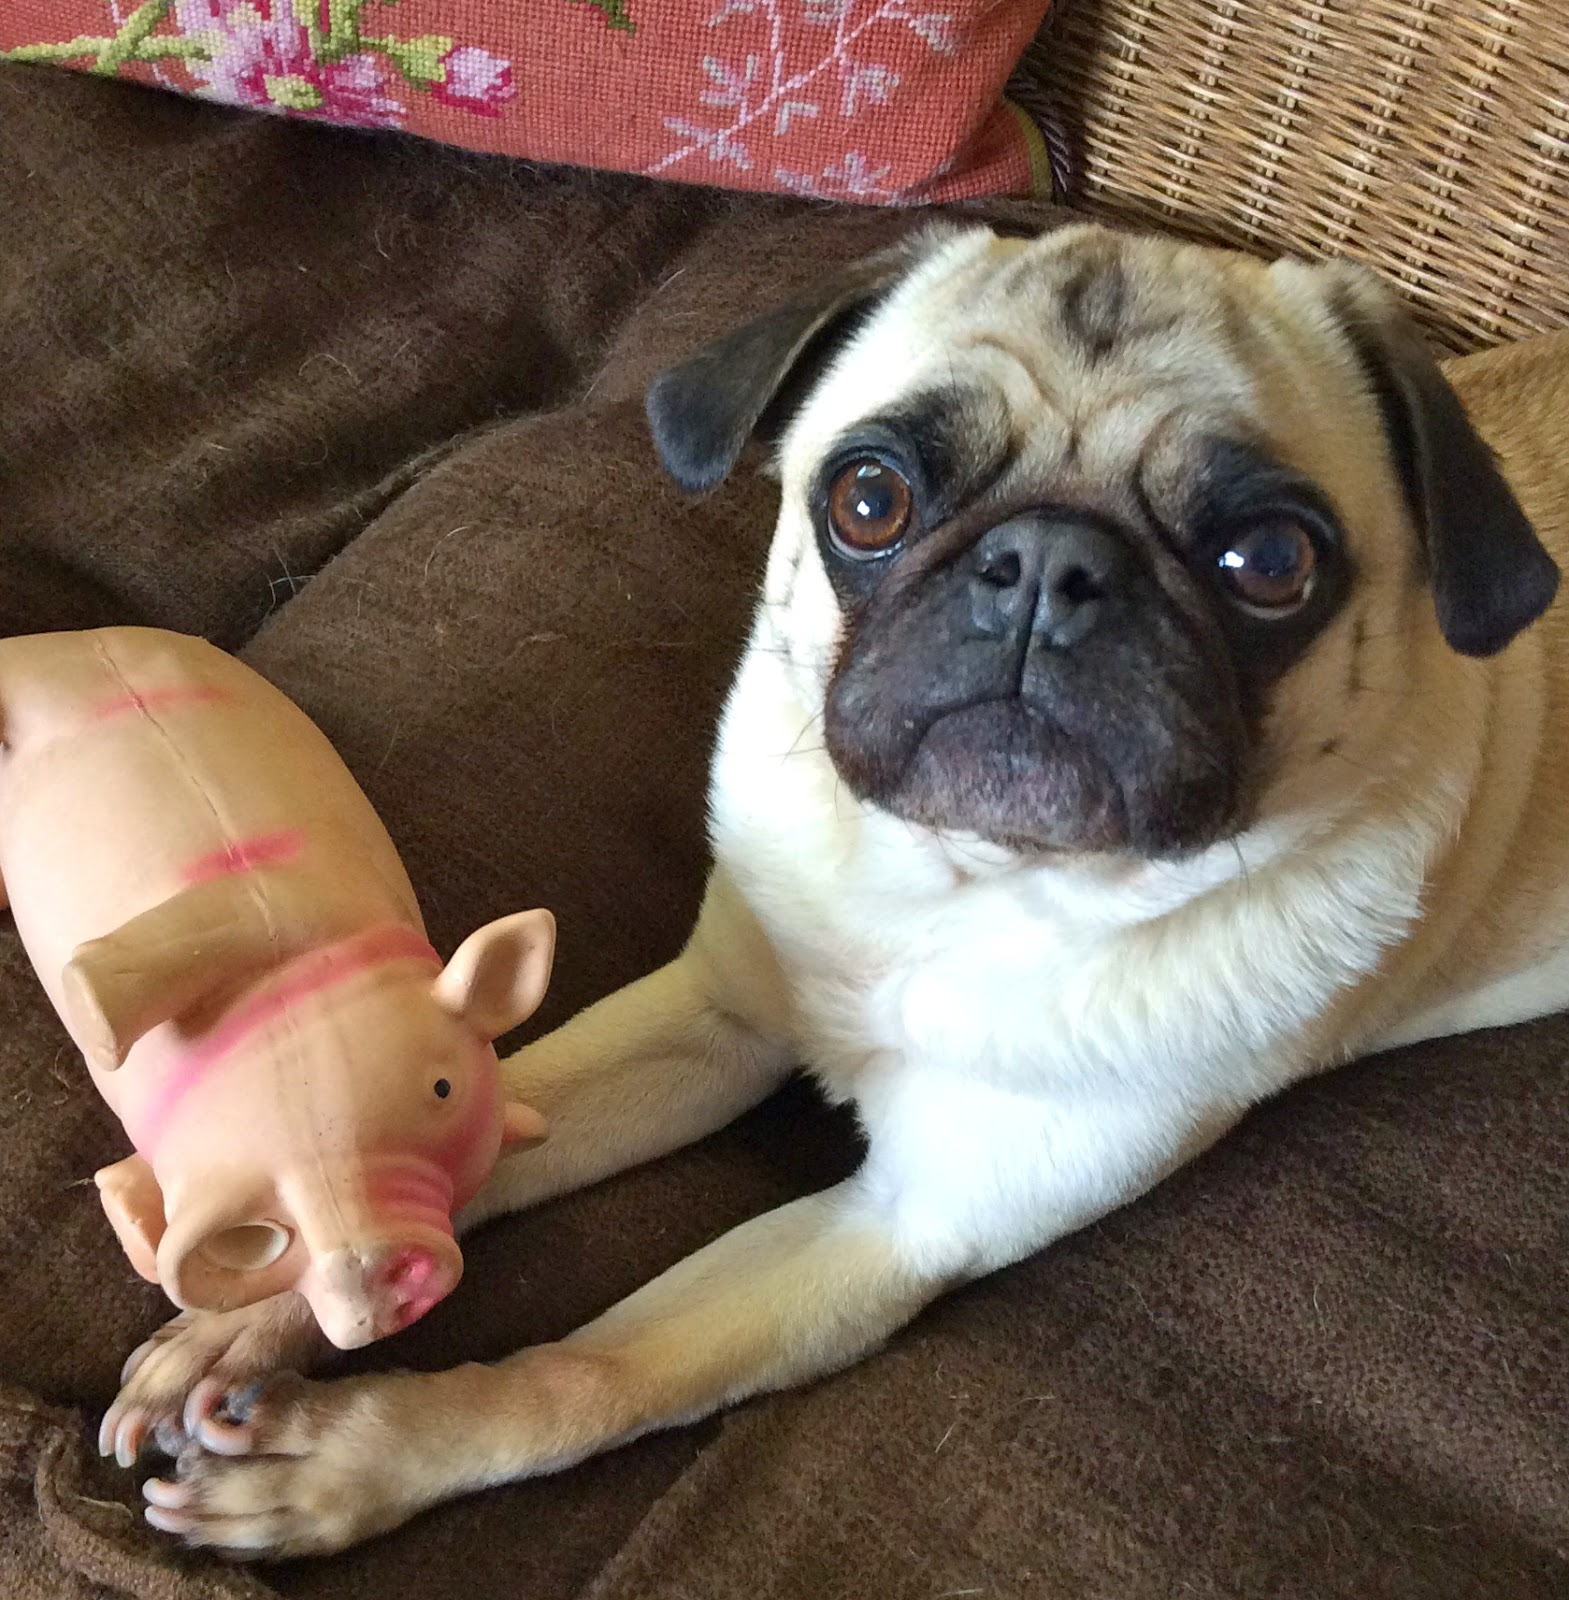 Liam the pug with his pig toy